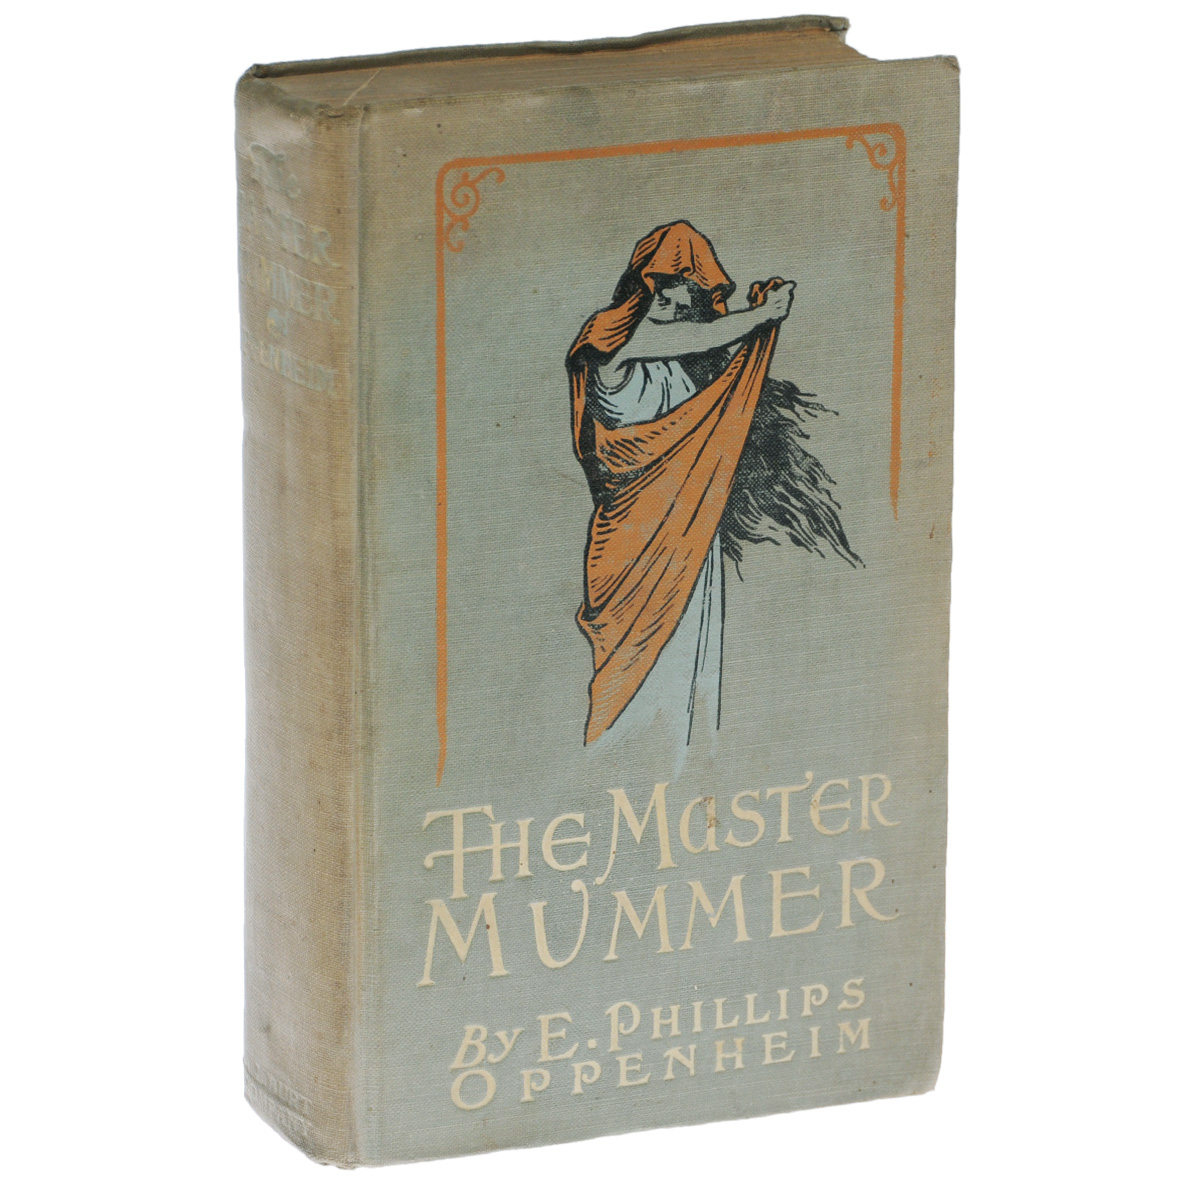 The Master Mummer0120710Нью-Йорк, 1904 год. A. L. Burt Company, publishers.Издательский переплет. Потертый корешок. Сохранность хорошая.A best-selling author of novels, short stories, magazine articles, translations, and plays, Oppenheim published over 150 books. He is considered one of the originators of the thriller genre, his novels also range from spy thrillers to romance, but all have an undertone of intrigue. He also wrote under the name of Anthony Partridge. The Master Mummer begins: Sheets of virgin manuscript paper littered my desk, the smoke of much uselessly consumed tobacco hung about the room in a little cloud. Many a time I had dipped my pen in the ink, only to find myself a few minutes later scrawling ridiculous little figures upon the margin of my blotting-pad. It was not at all an auspicious start for one who sought immortality.Издание не подлежит вывозу за пределы Российской Федерации.